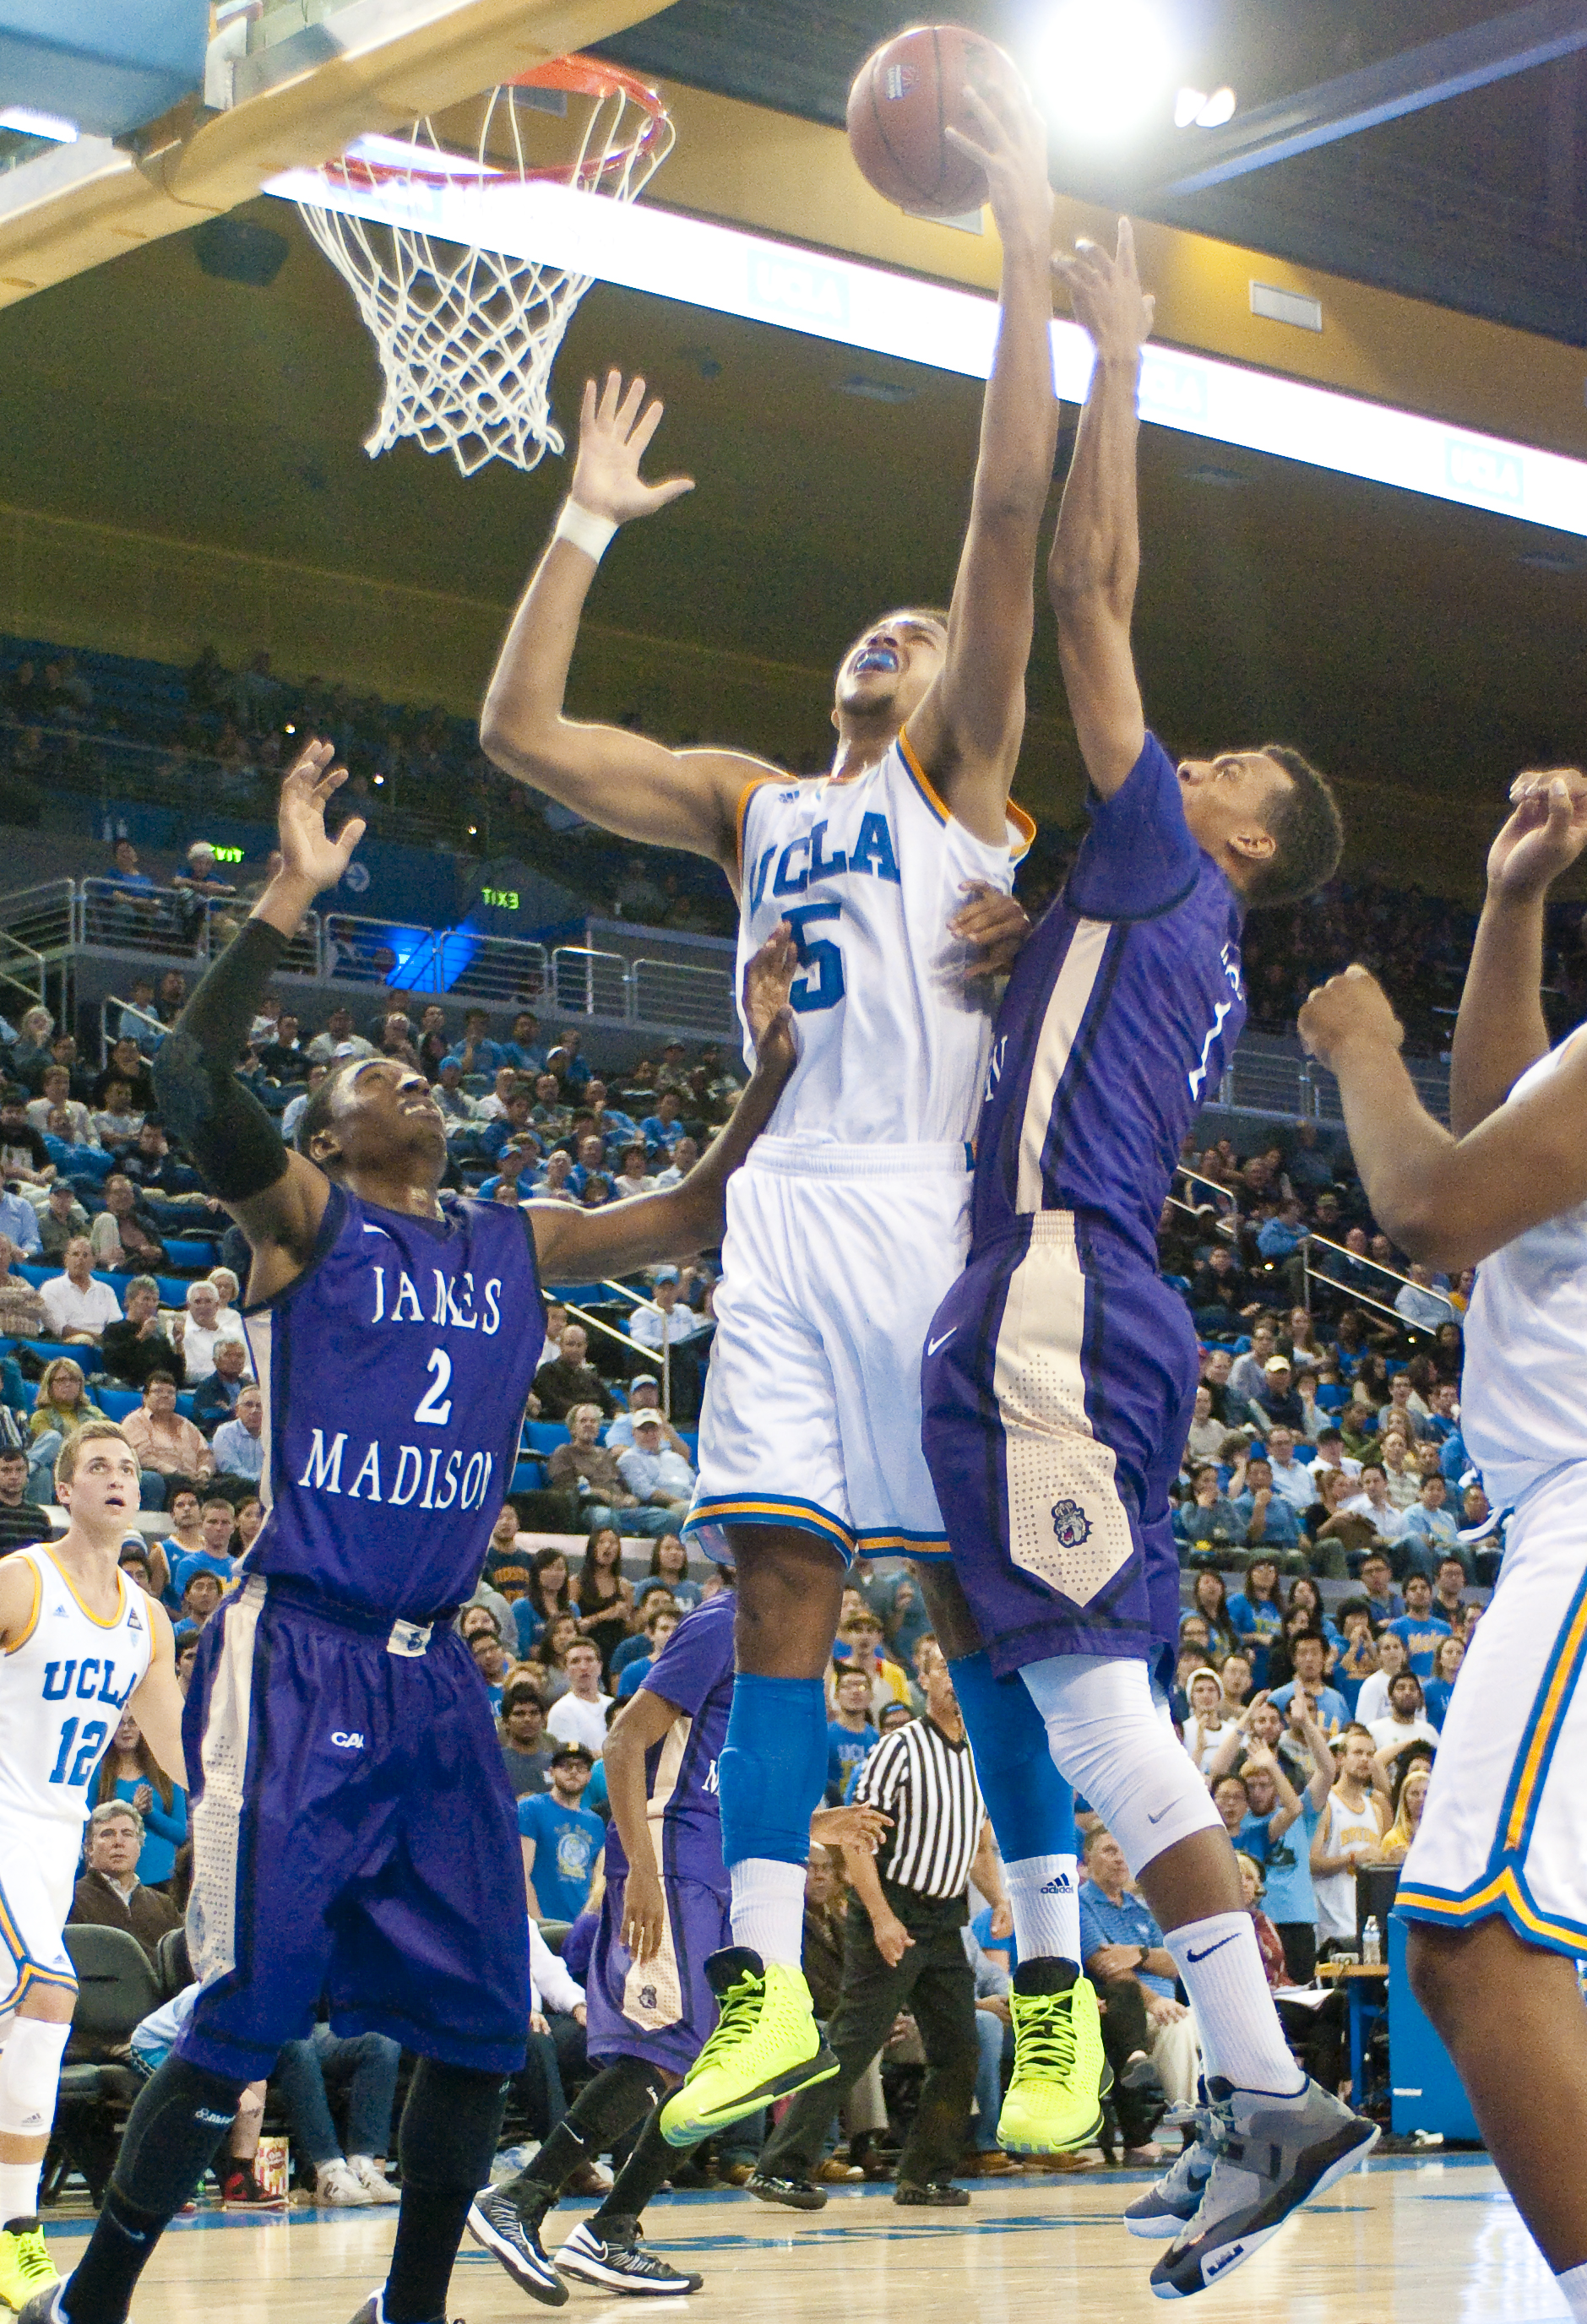 Despite having a height advantage over Cal Poly on Sunday night, the Bruins ended the game tied in total rebounds with the Mustangs. Freshman guard Kyle Anderson, seen here against James Madison, hauled in five of UCLA's 35 rebounds.